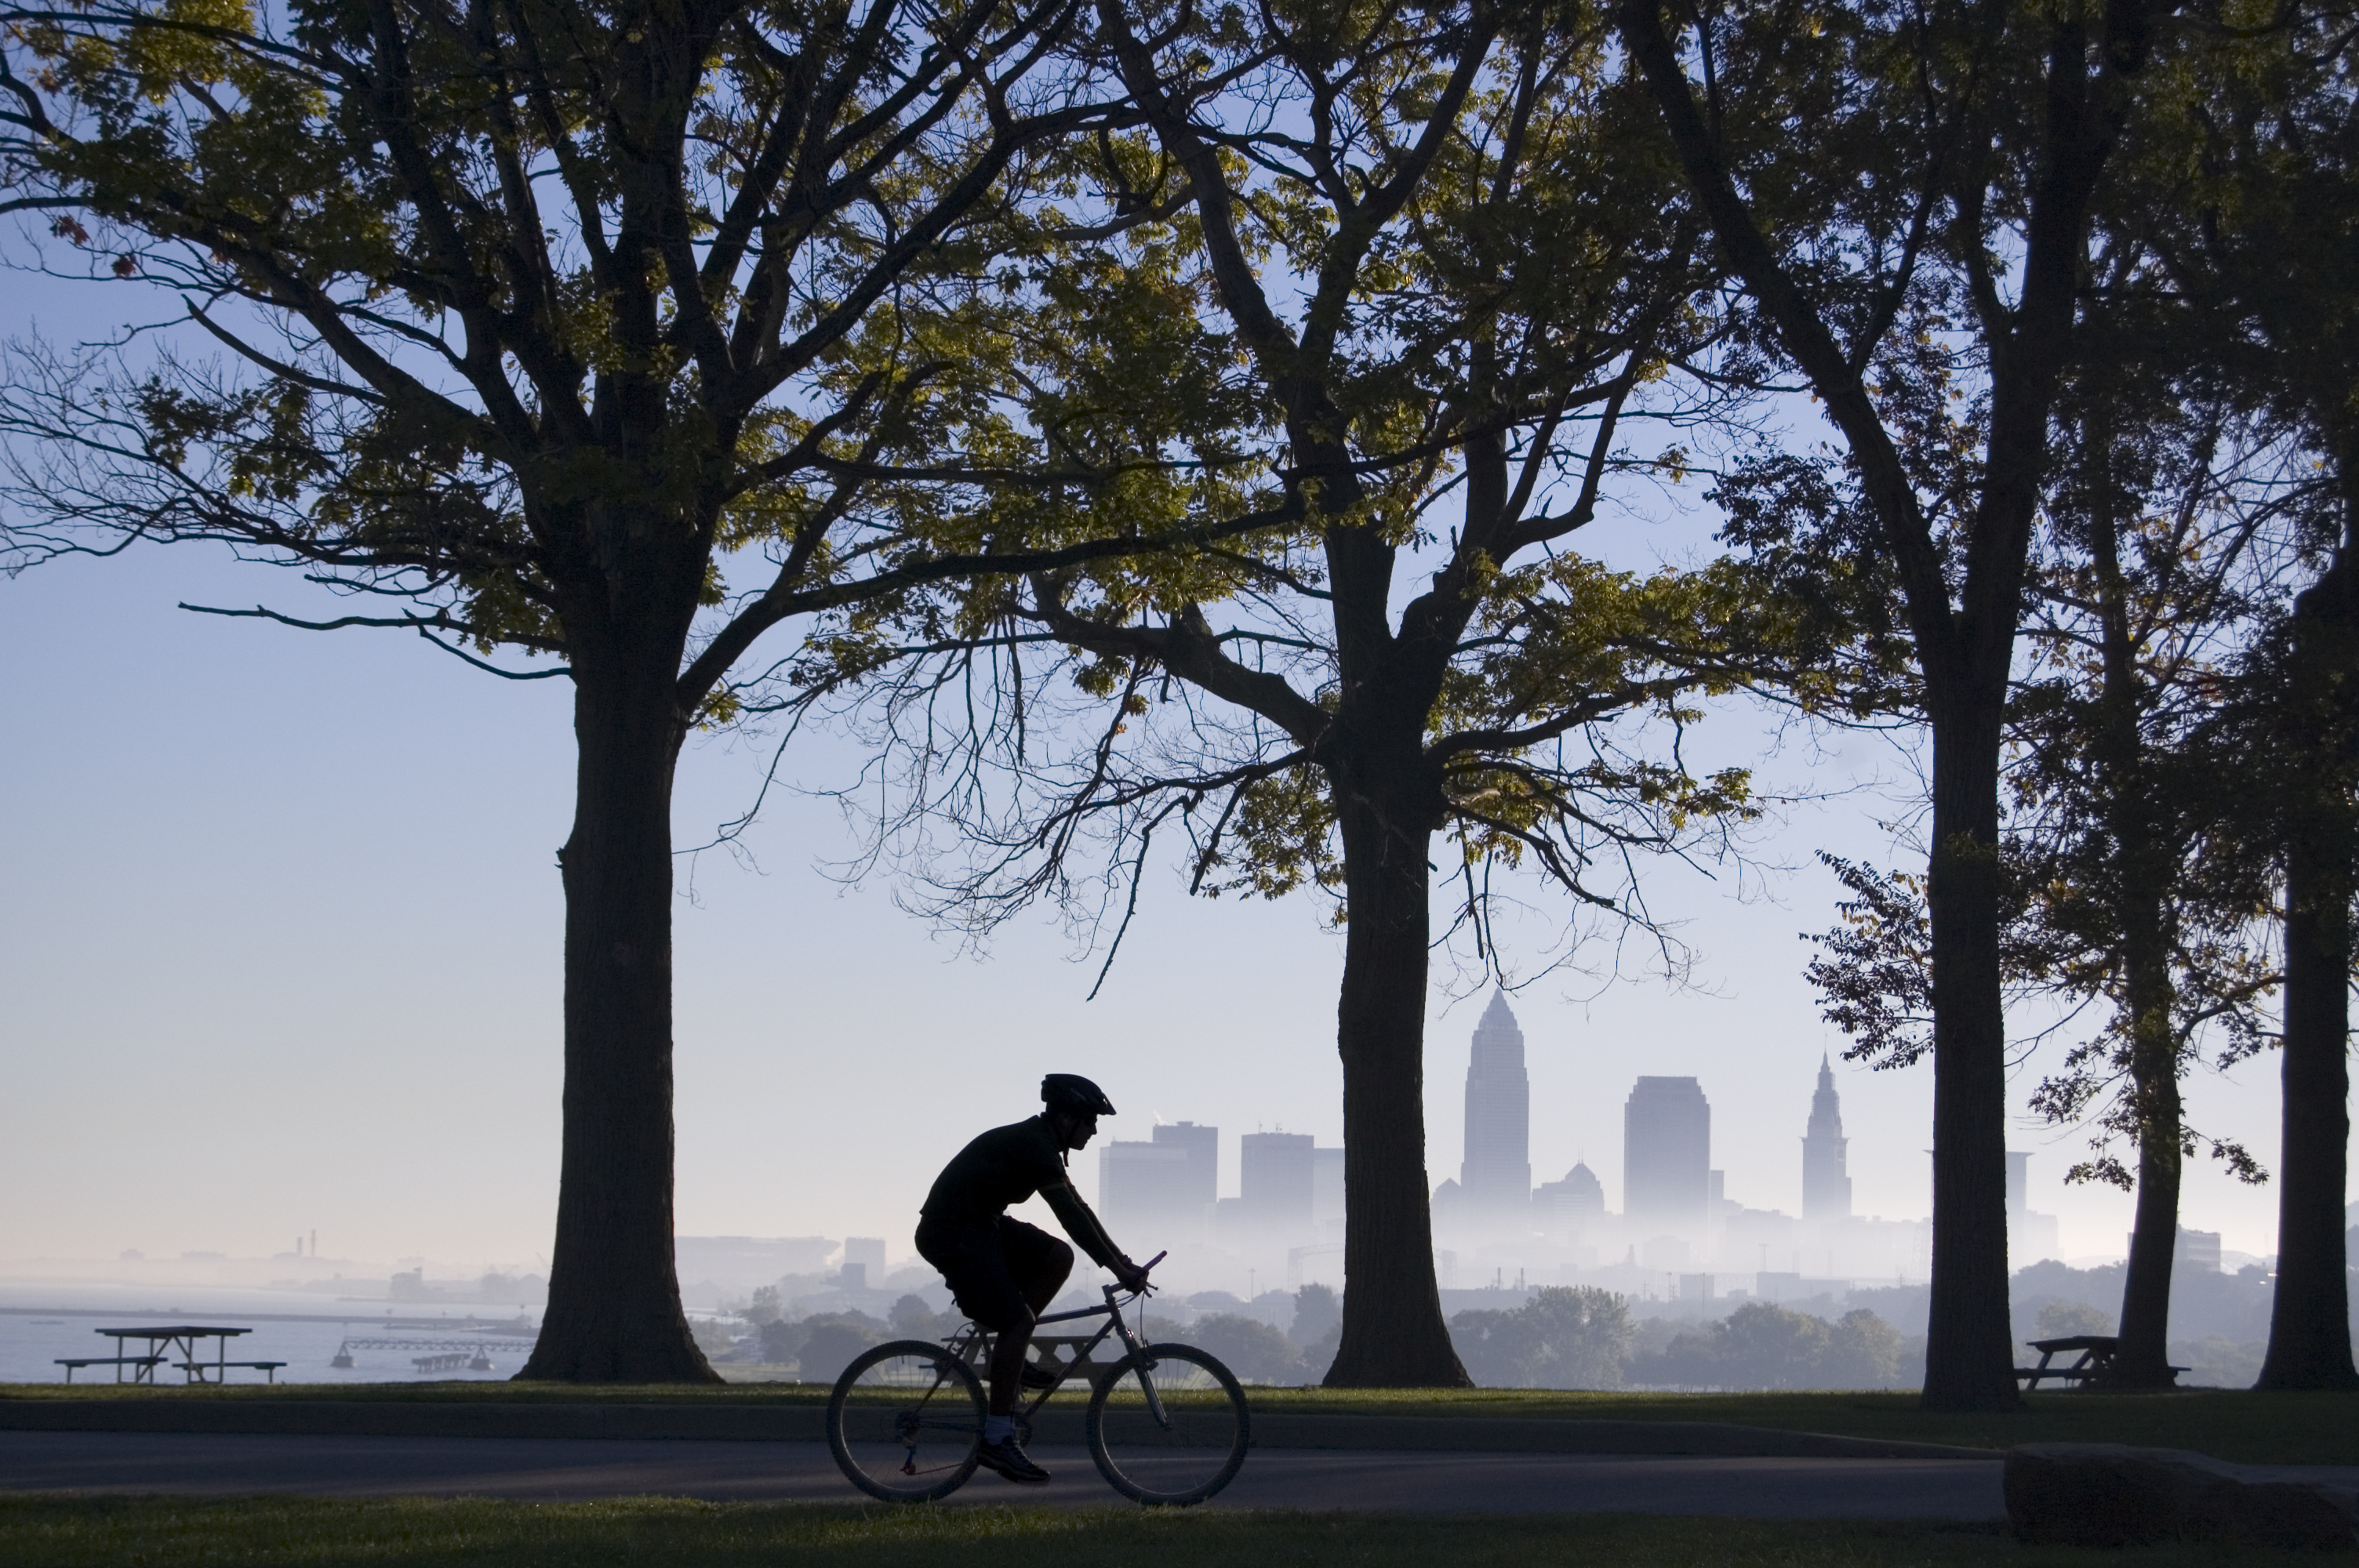 GettyImages-116034917 (Biker on Foggy Morning Cleveland in Background)